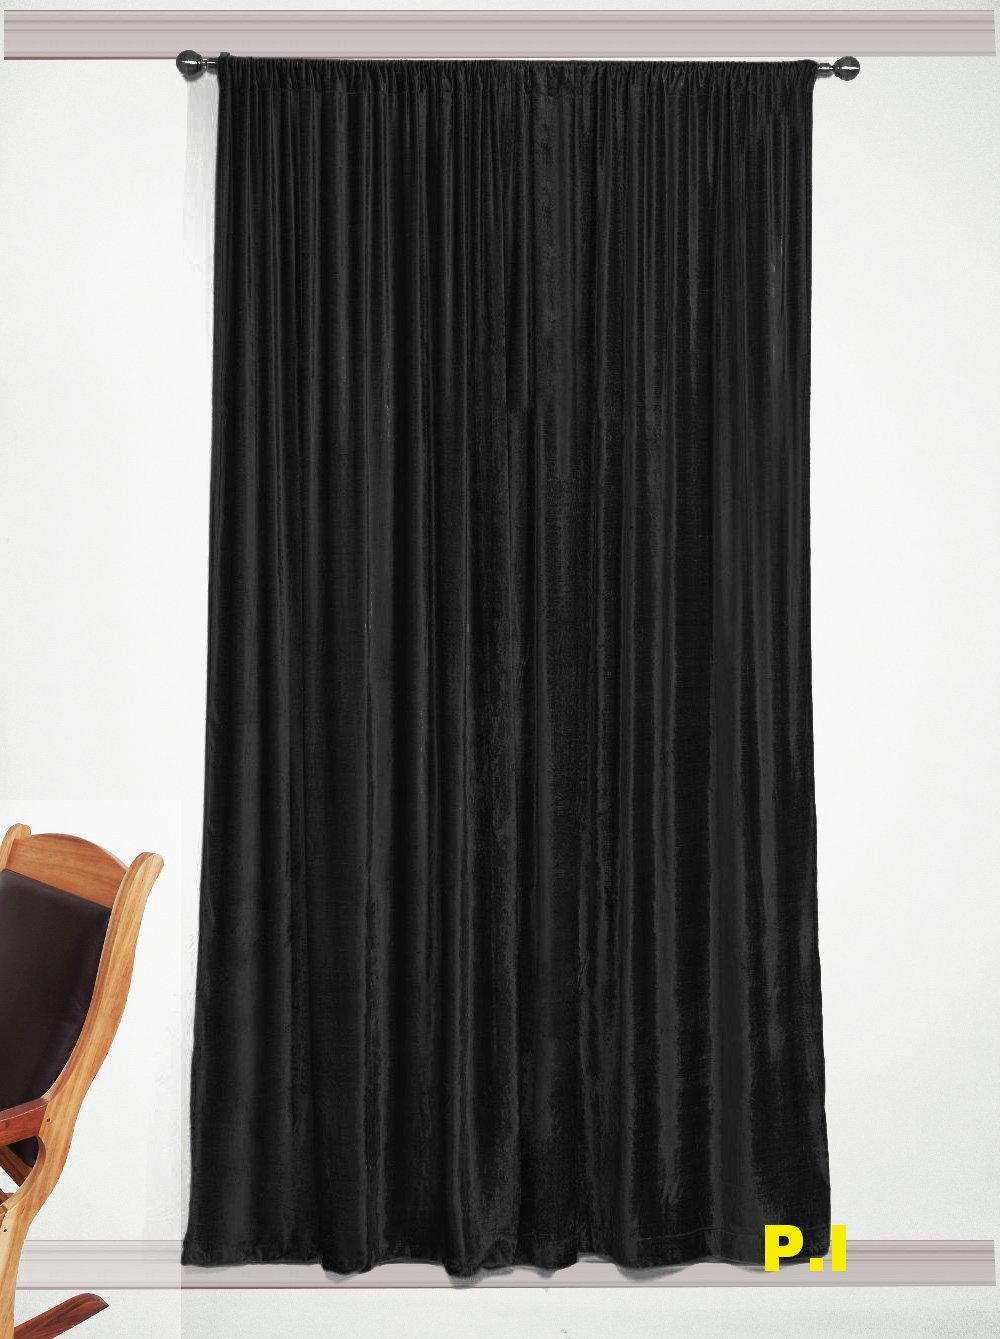 """New Blackout 100% Cotton Velvet Curtain Single Lined Panel 54""""W by 108""""H - Black"""